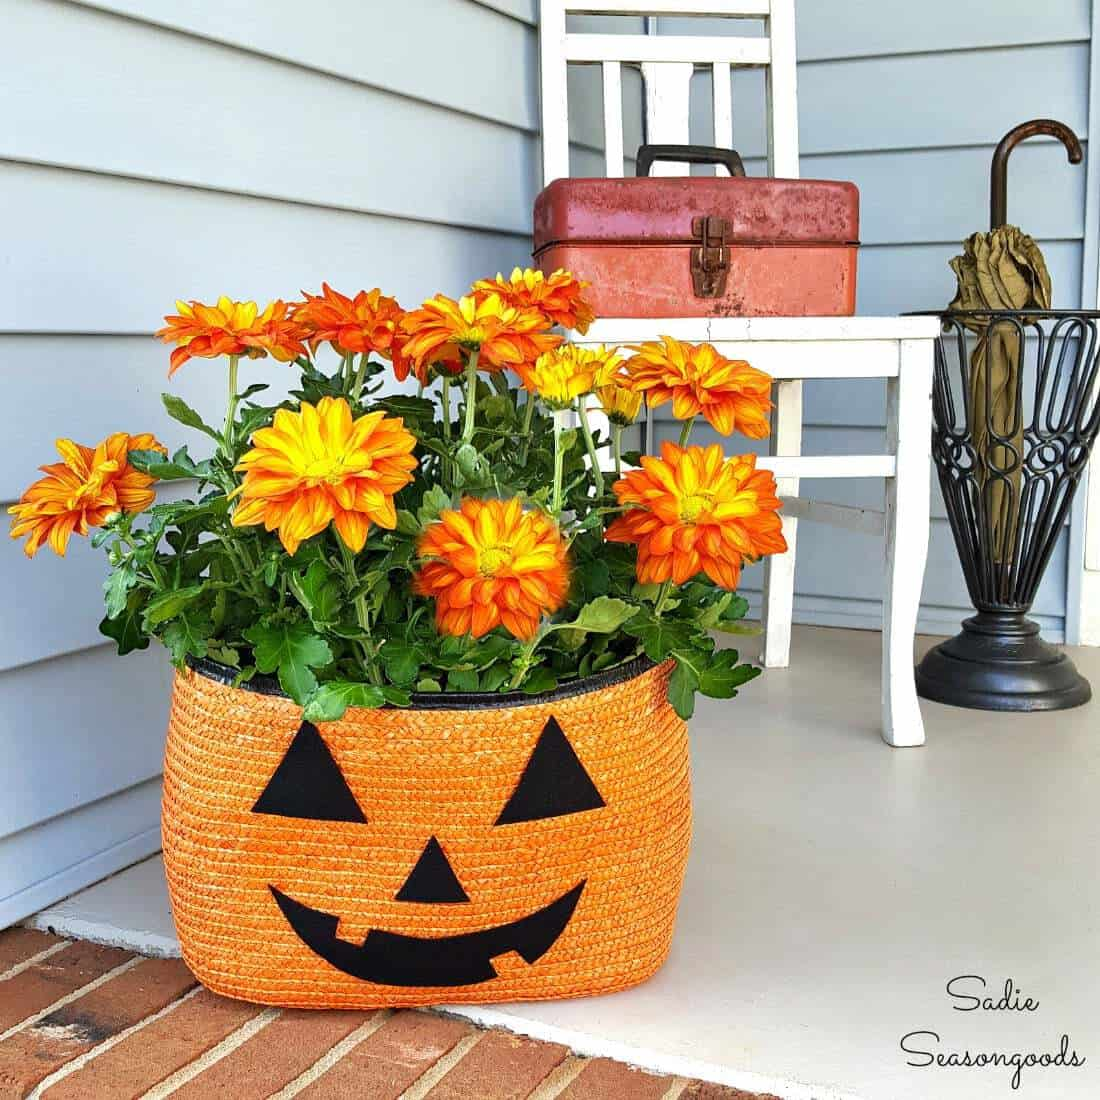 Halloween Porch Decorations with a Straw Tote